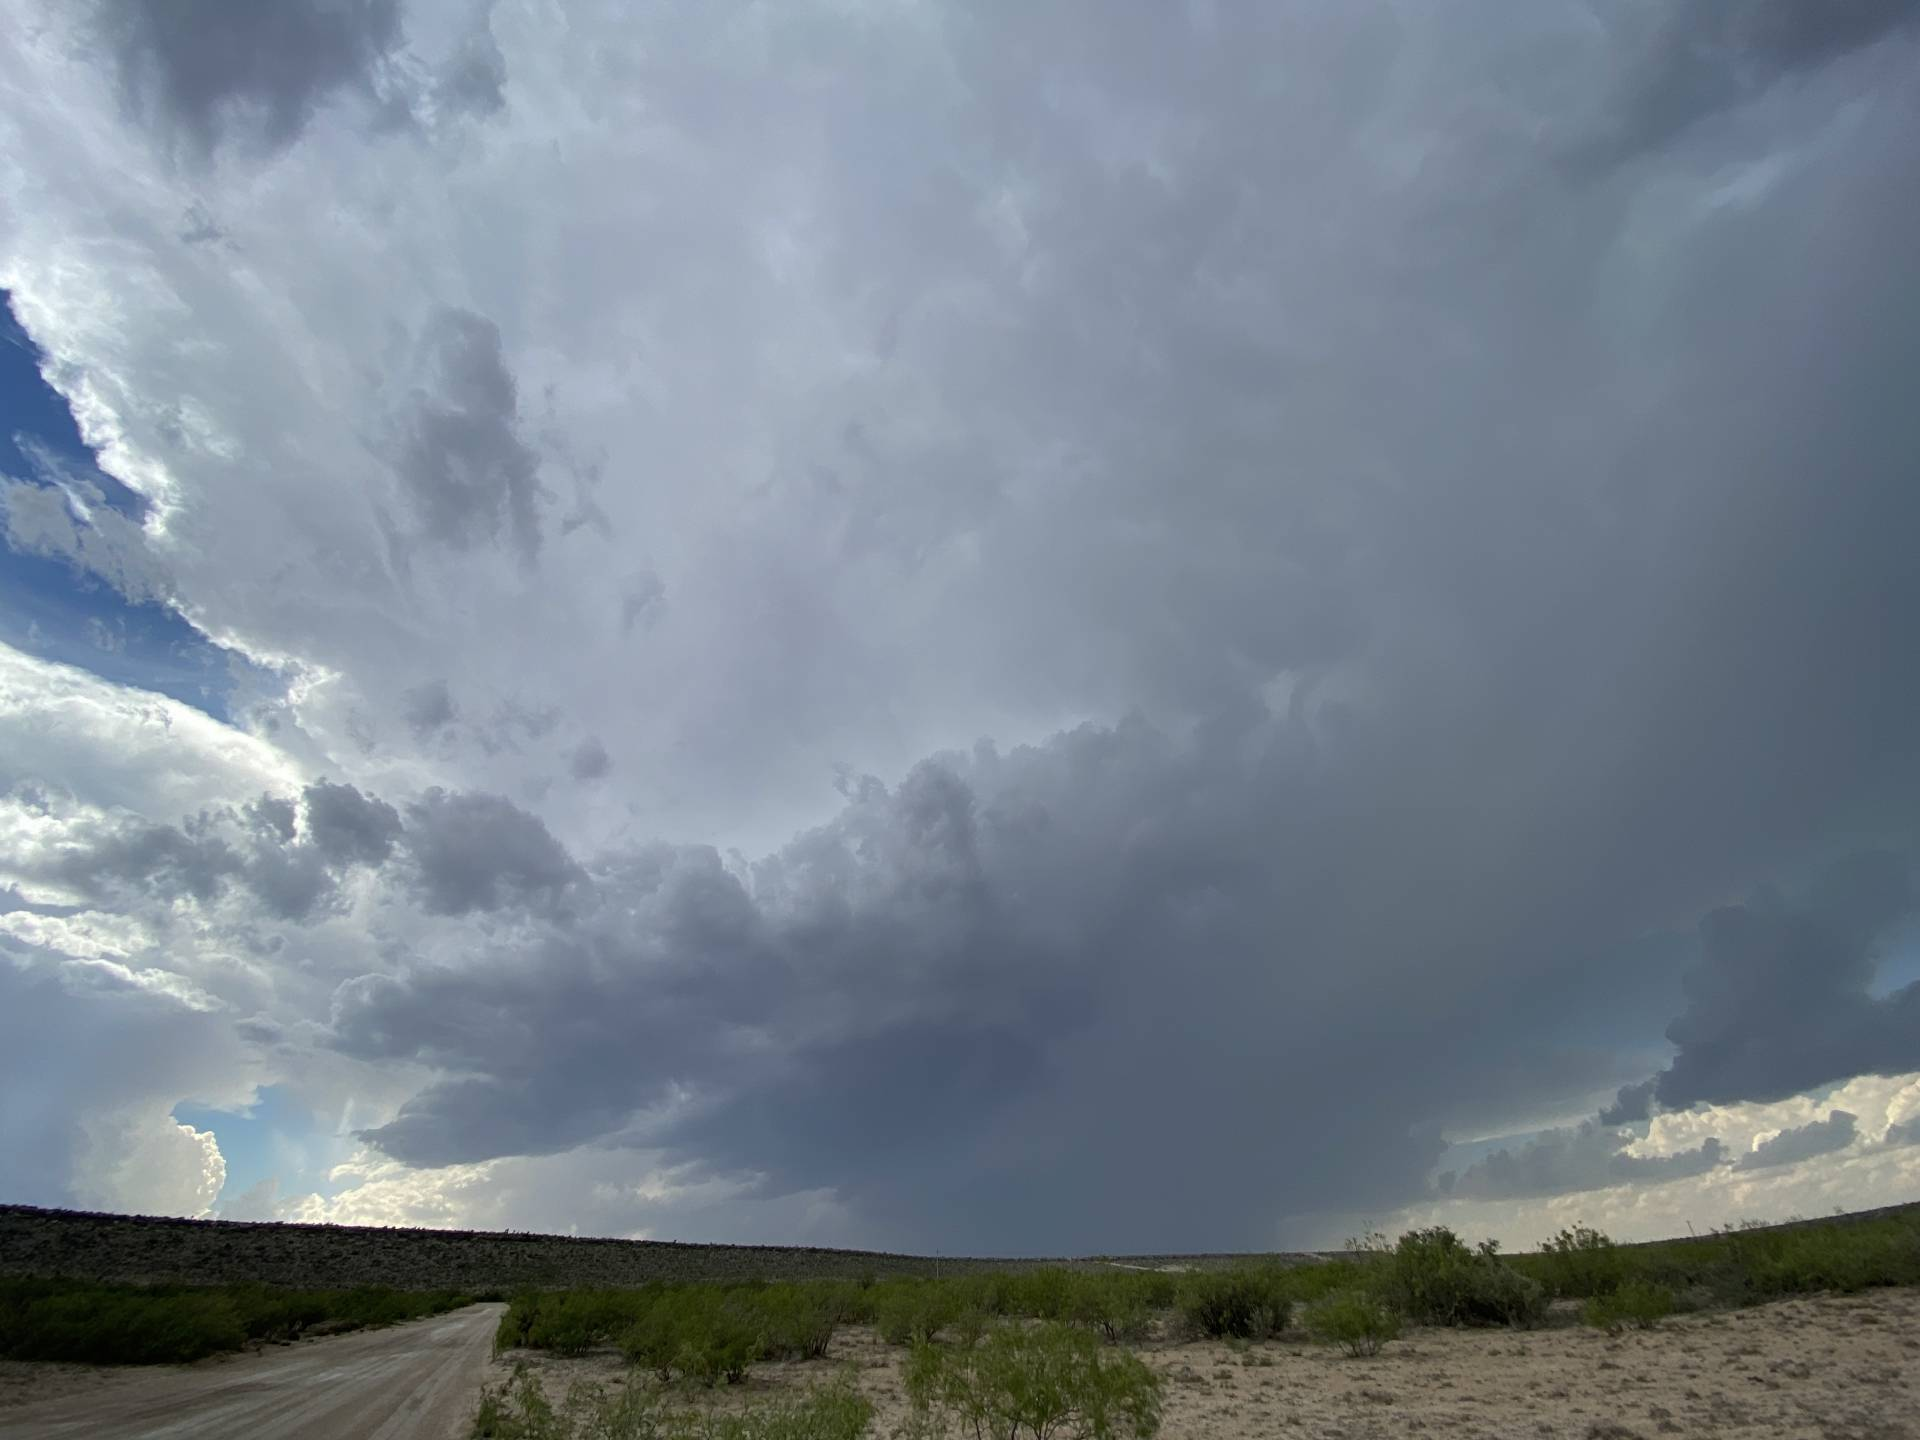 Severe warned storm north of Fort Stockton. Will update the live chase at H&H with pics as much as I can.